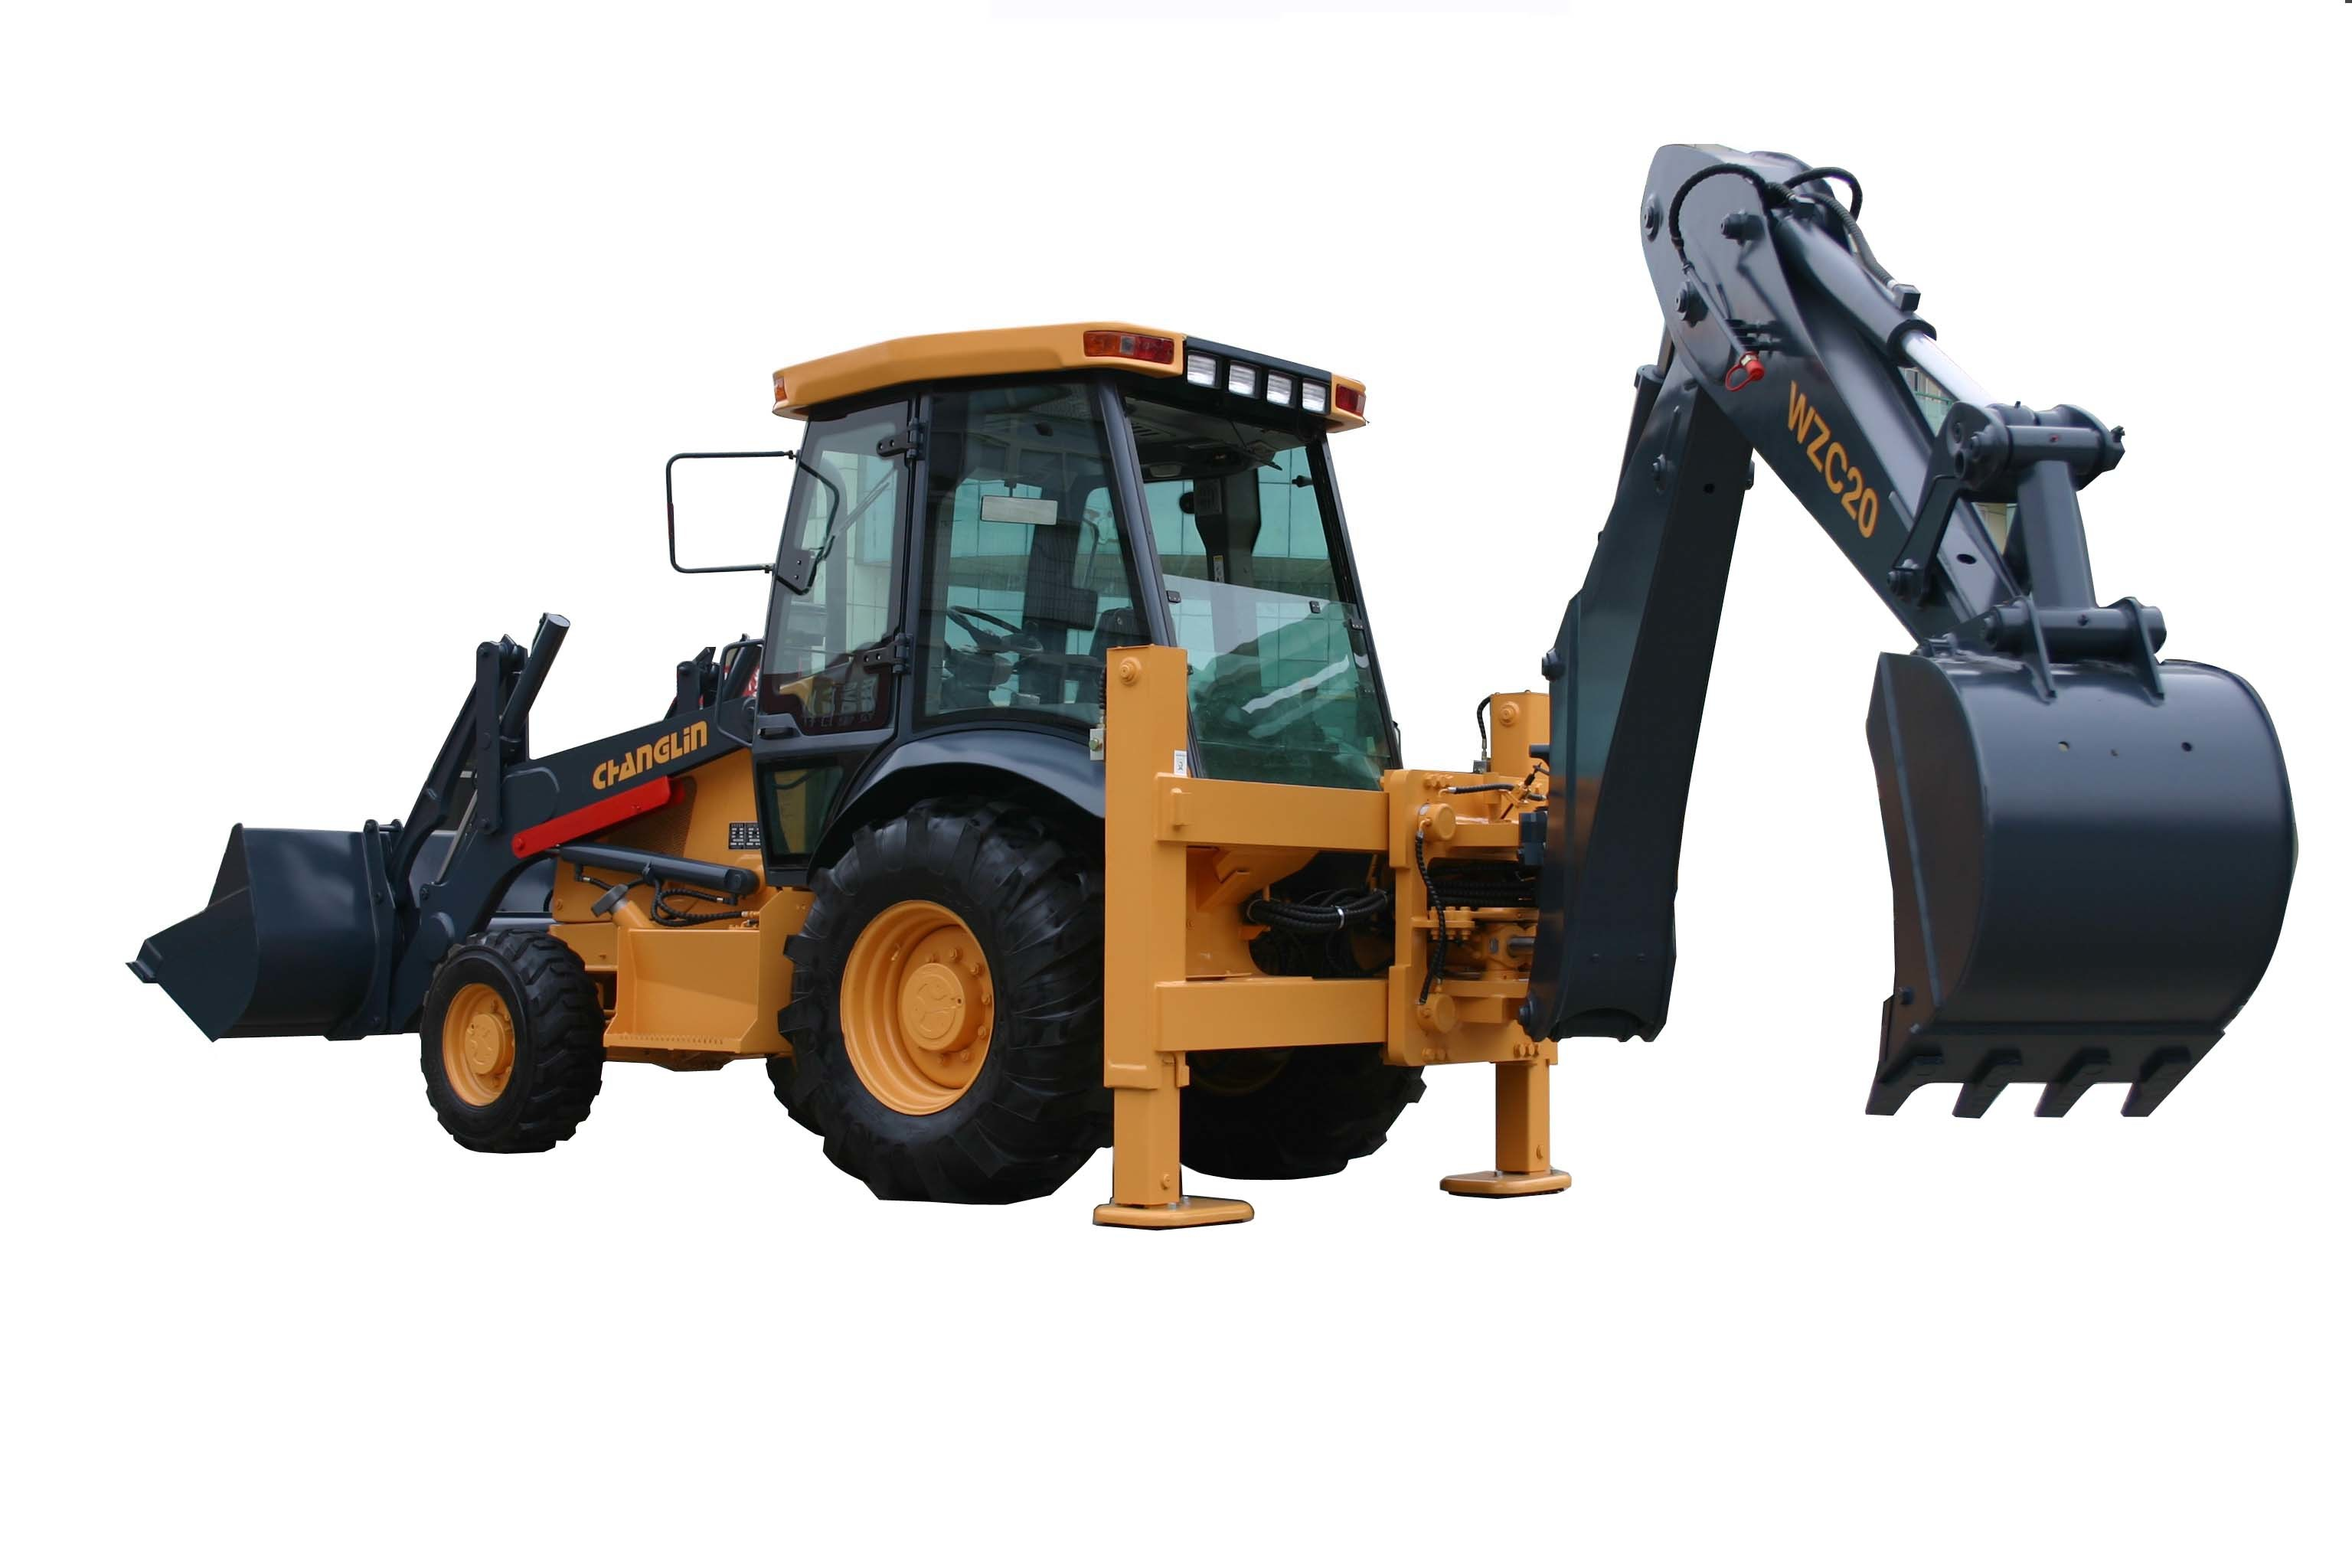 China WZC20 Backhoe Loader - China Backhoe Loader, Loaders